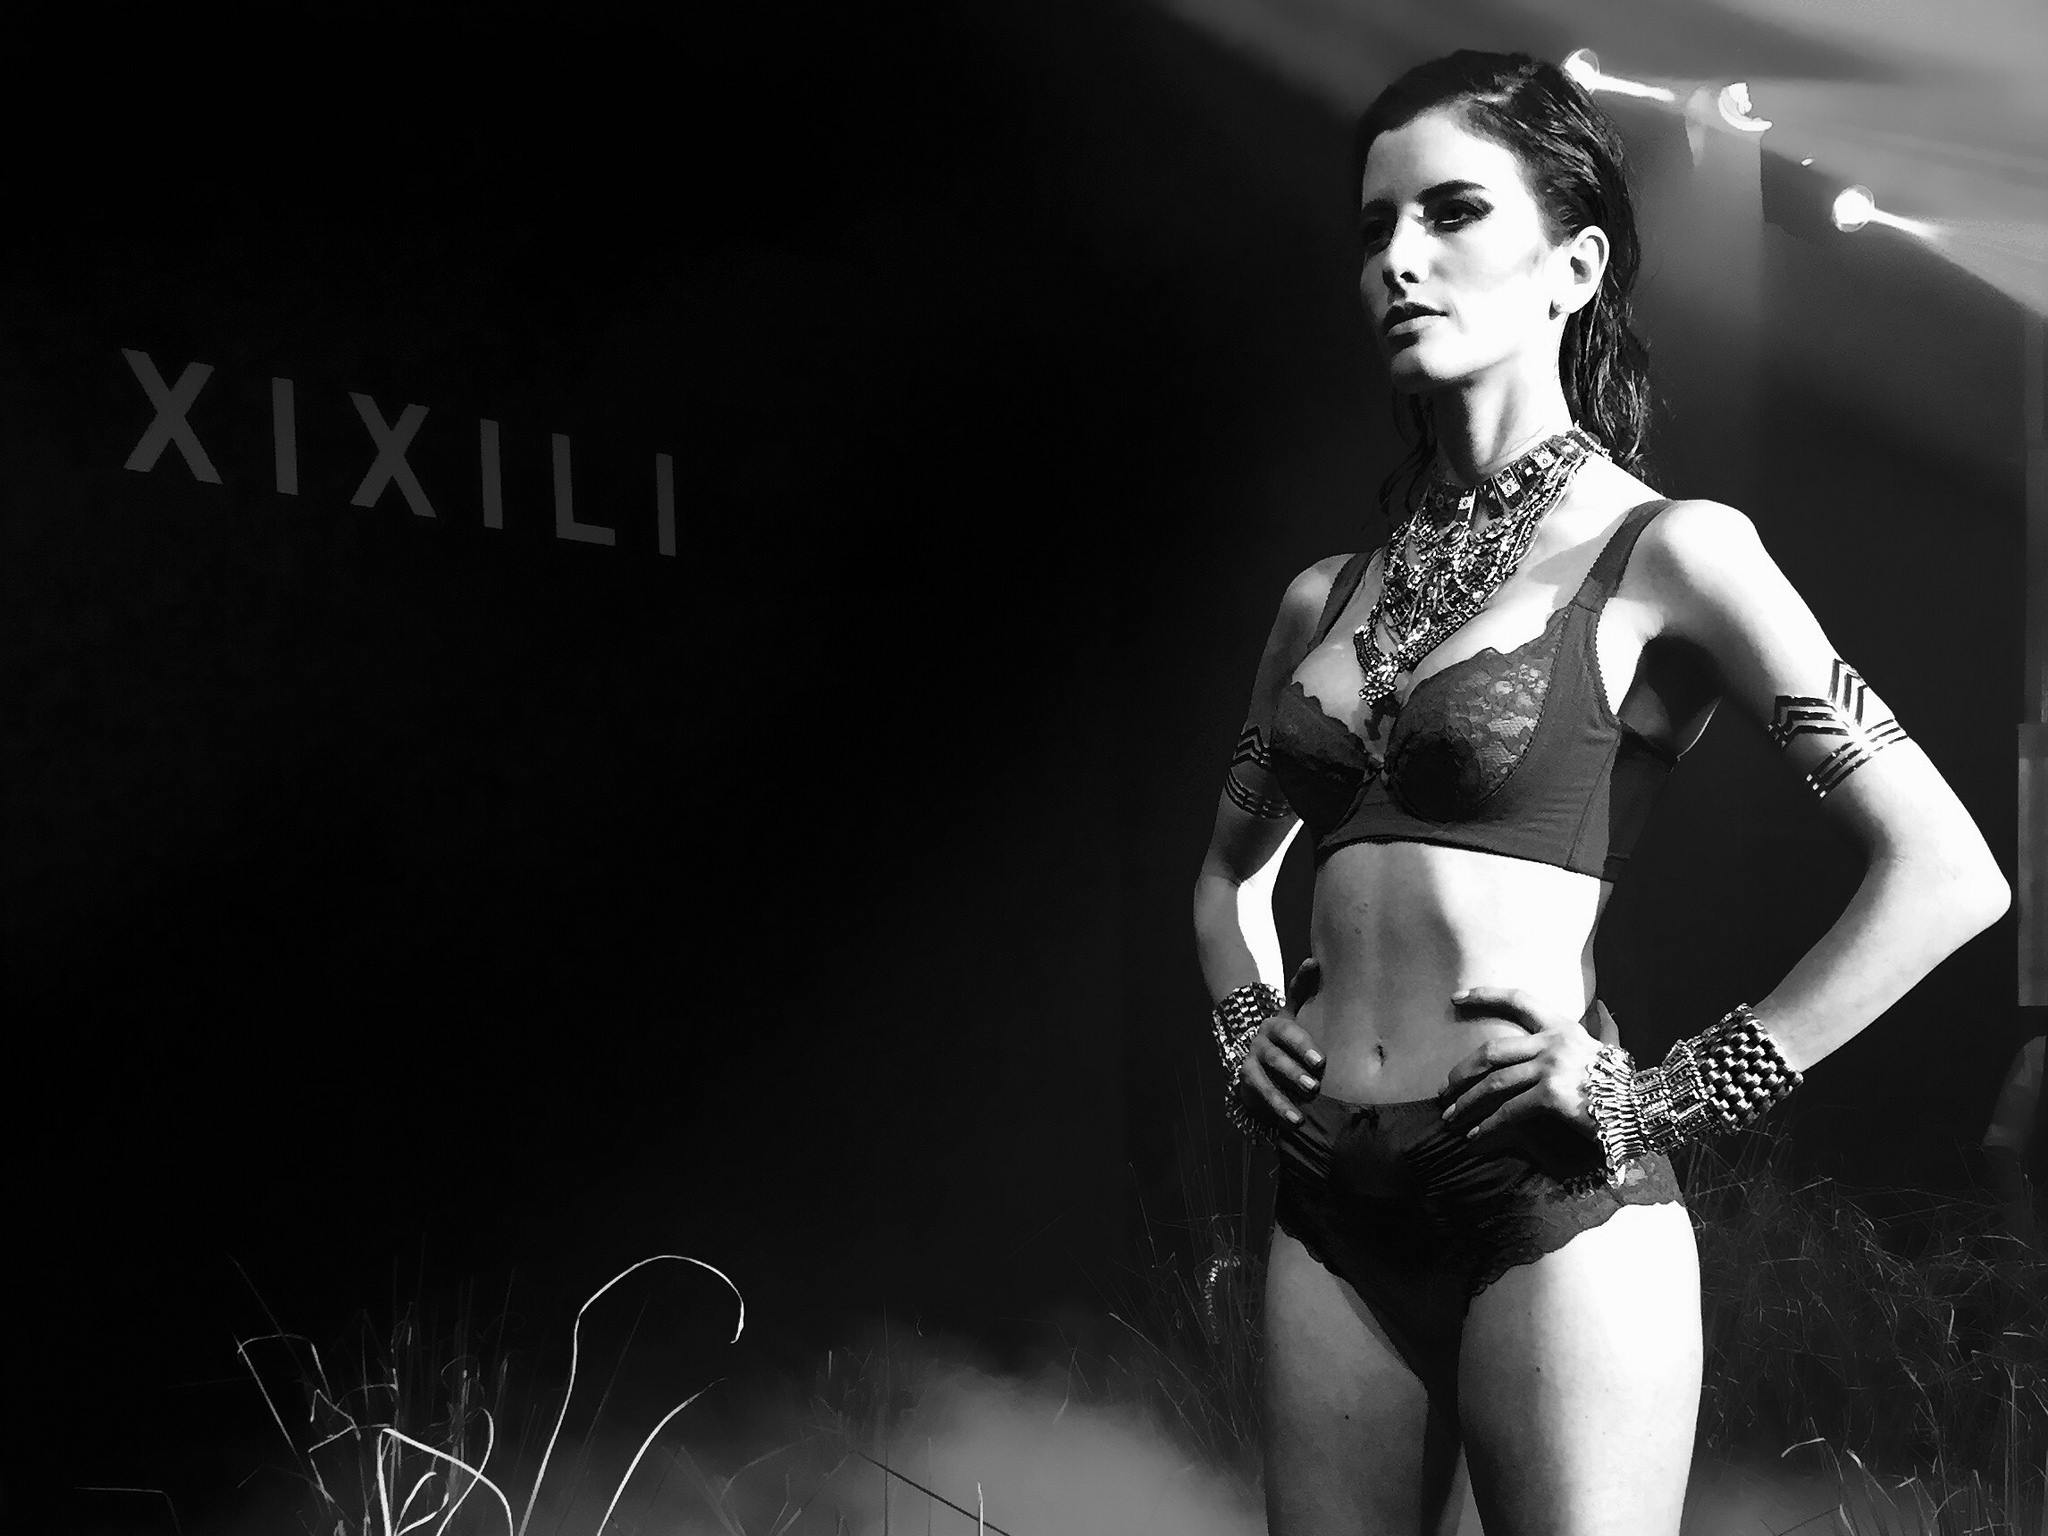 xixili Xixili Fashion Night Walks